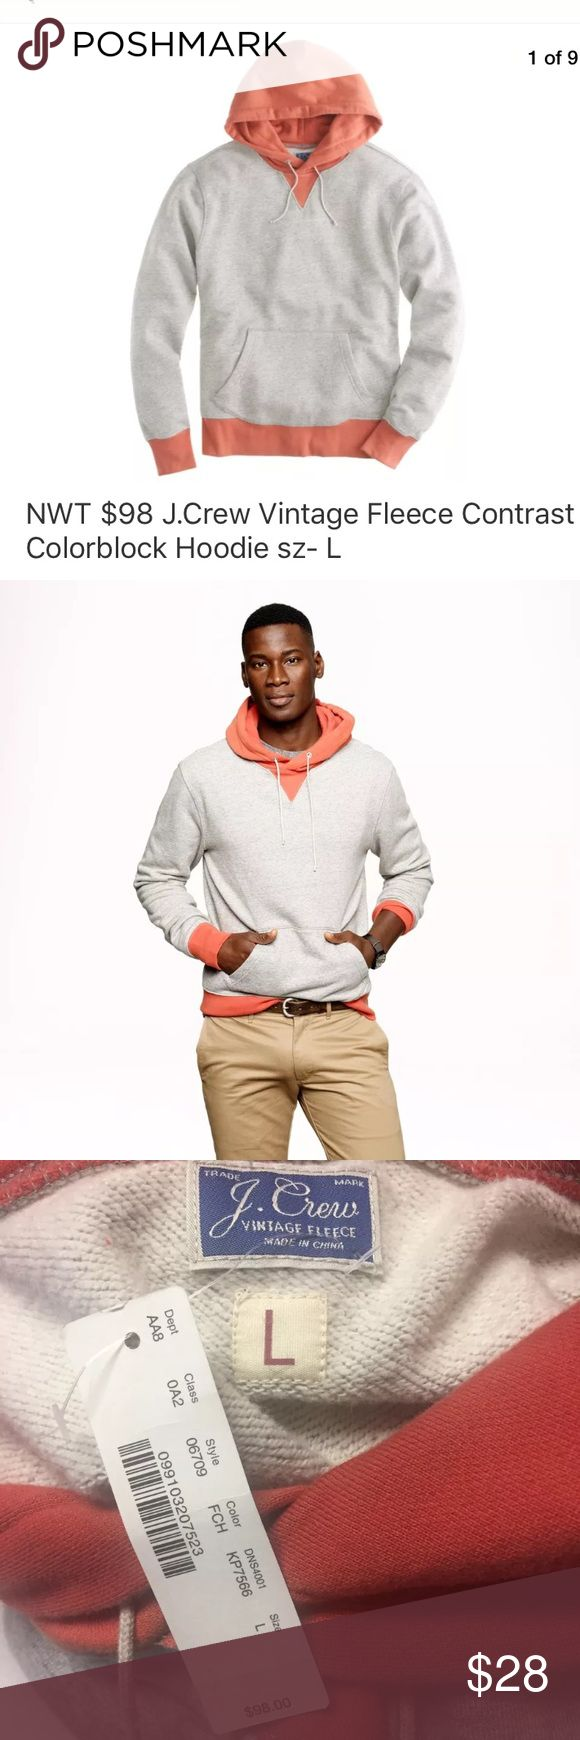 "J. CREW Vintage Fleece Contrast Colorblock Hoodie J. CREW (06709) Vintage Fleece Contrast Colorblock Hoodie (Gray, Orange). New with tag.   Size on tag- L Measures approximately: 22.5"" from armpit to armpit 27.5"" from shoulder to cuff 28.5"" length  Product Details from J. Crew:  Forget everything you thought you knew about hoodies. This is the grown-up guy's hoodie. 	•	Cotton fleece. 	•	Rib trim at cuffs. 	•	Kangaroo pocket. 	•	Machine wash J. Crew Sweaters"